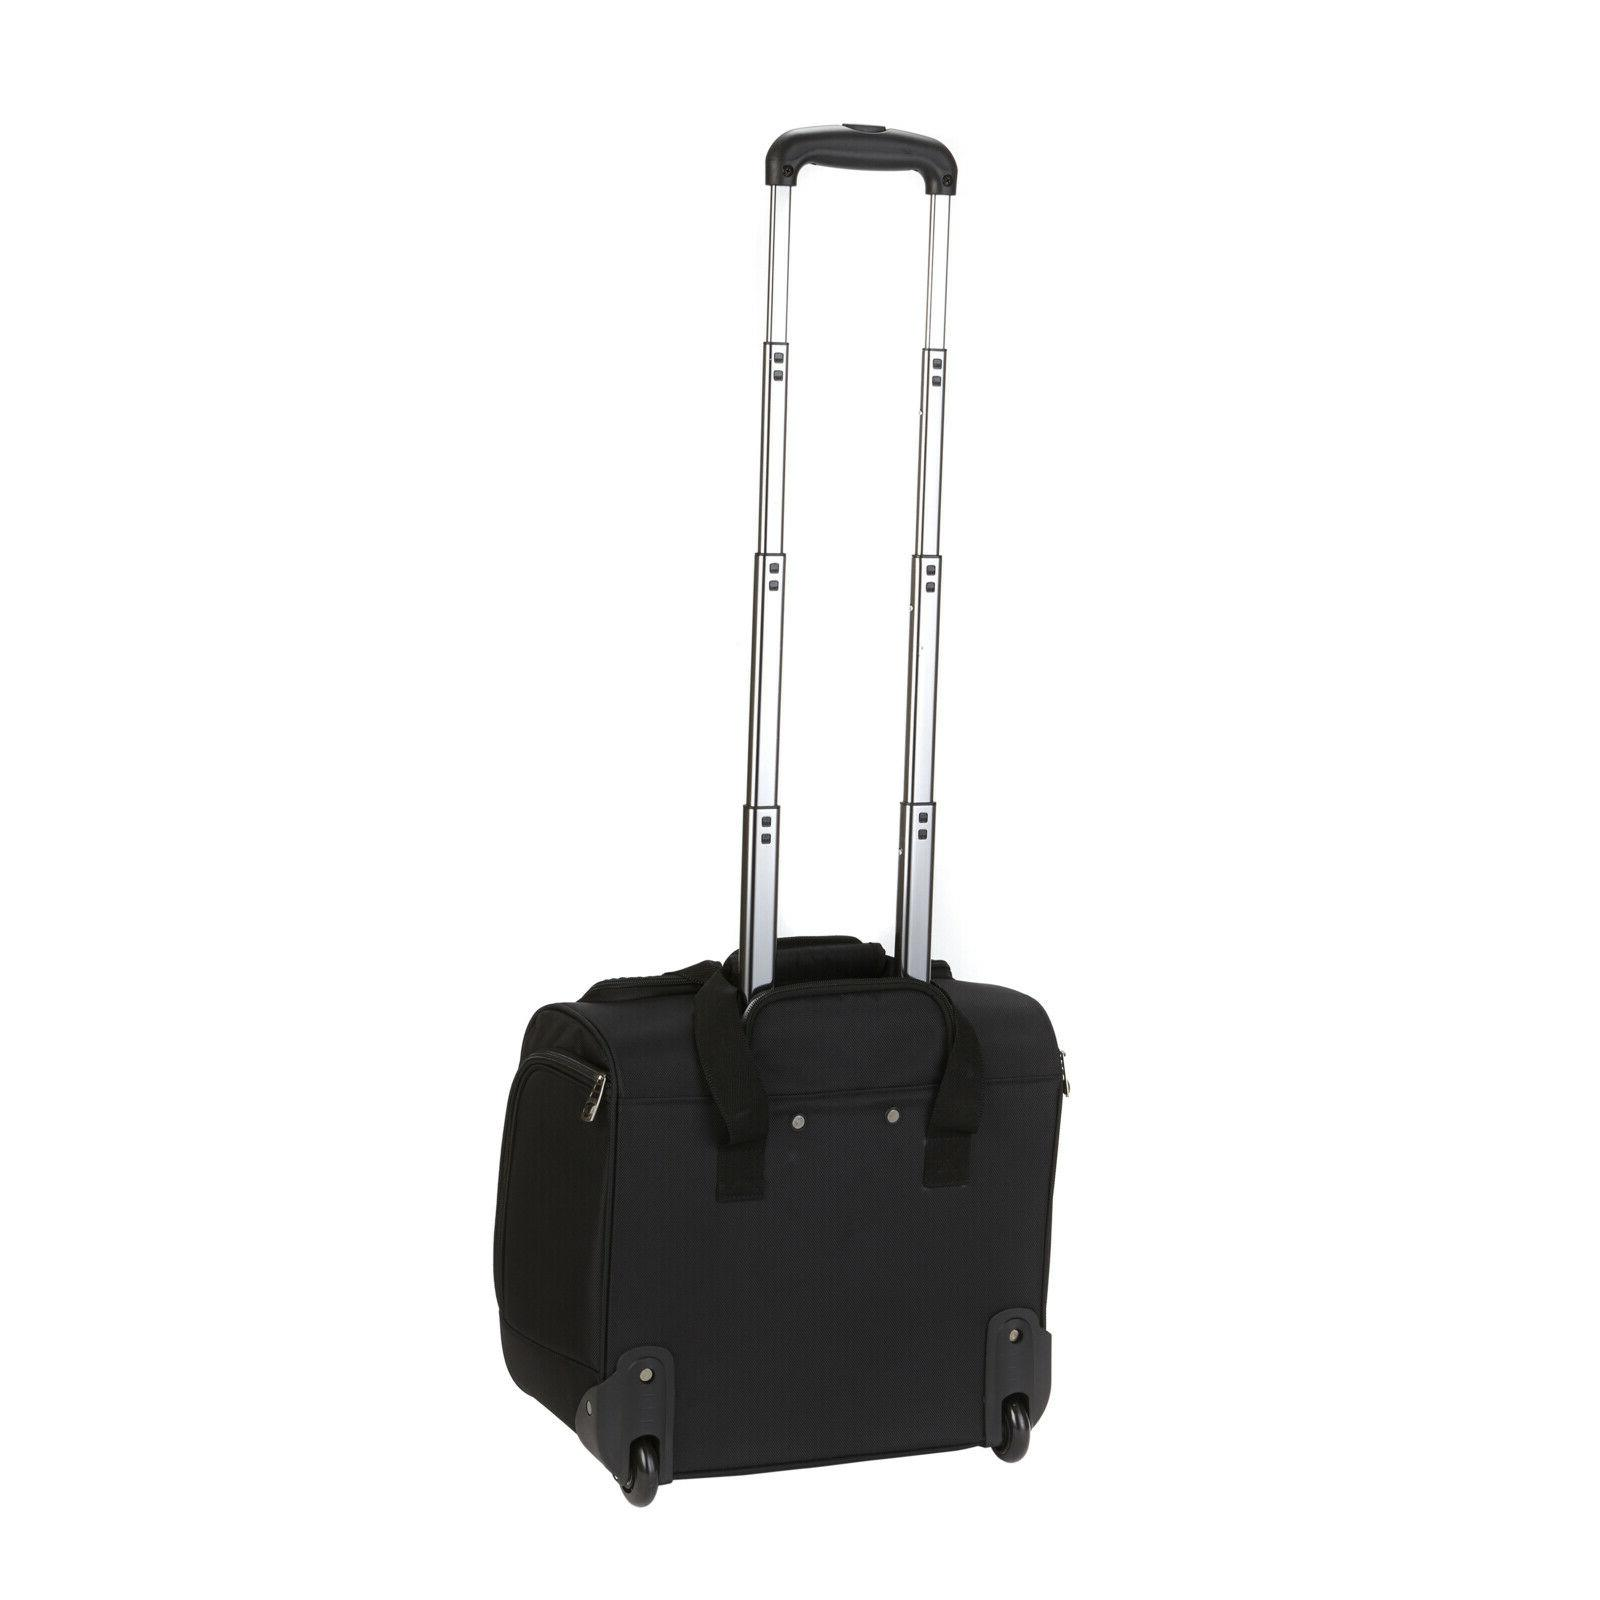 ROLLING LUGGAGE Business Trip Bags On